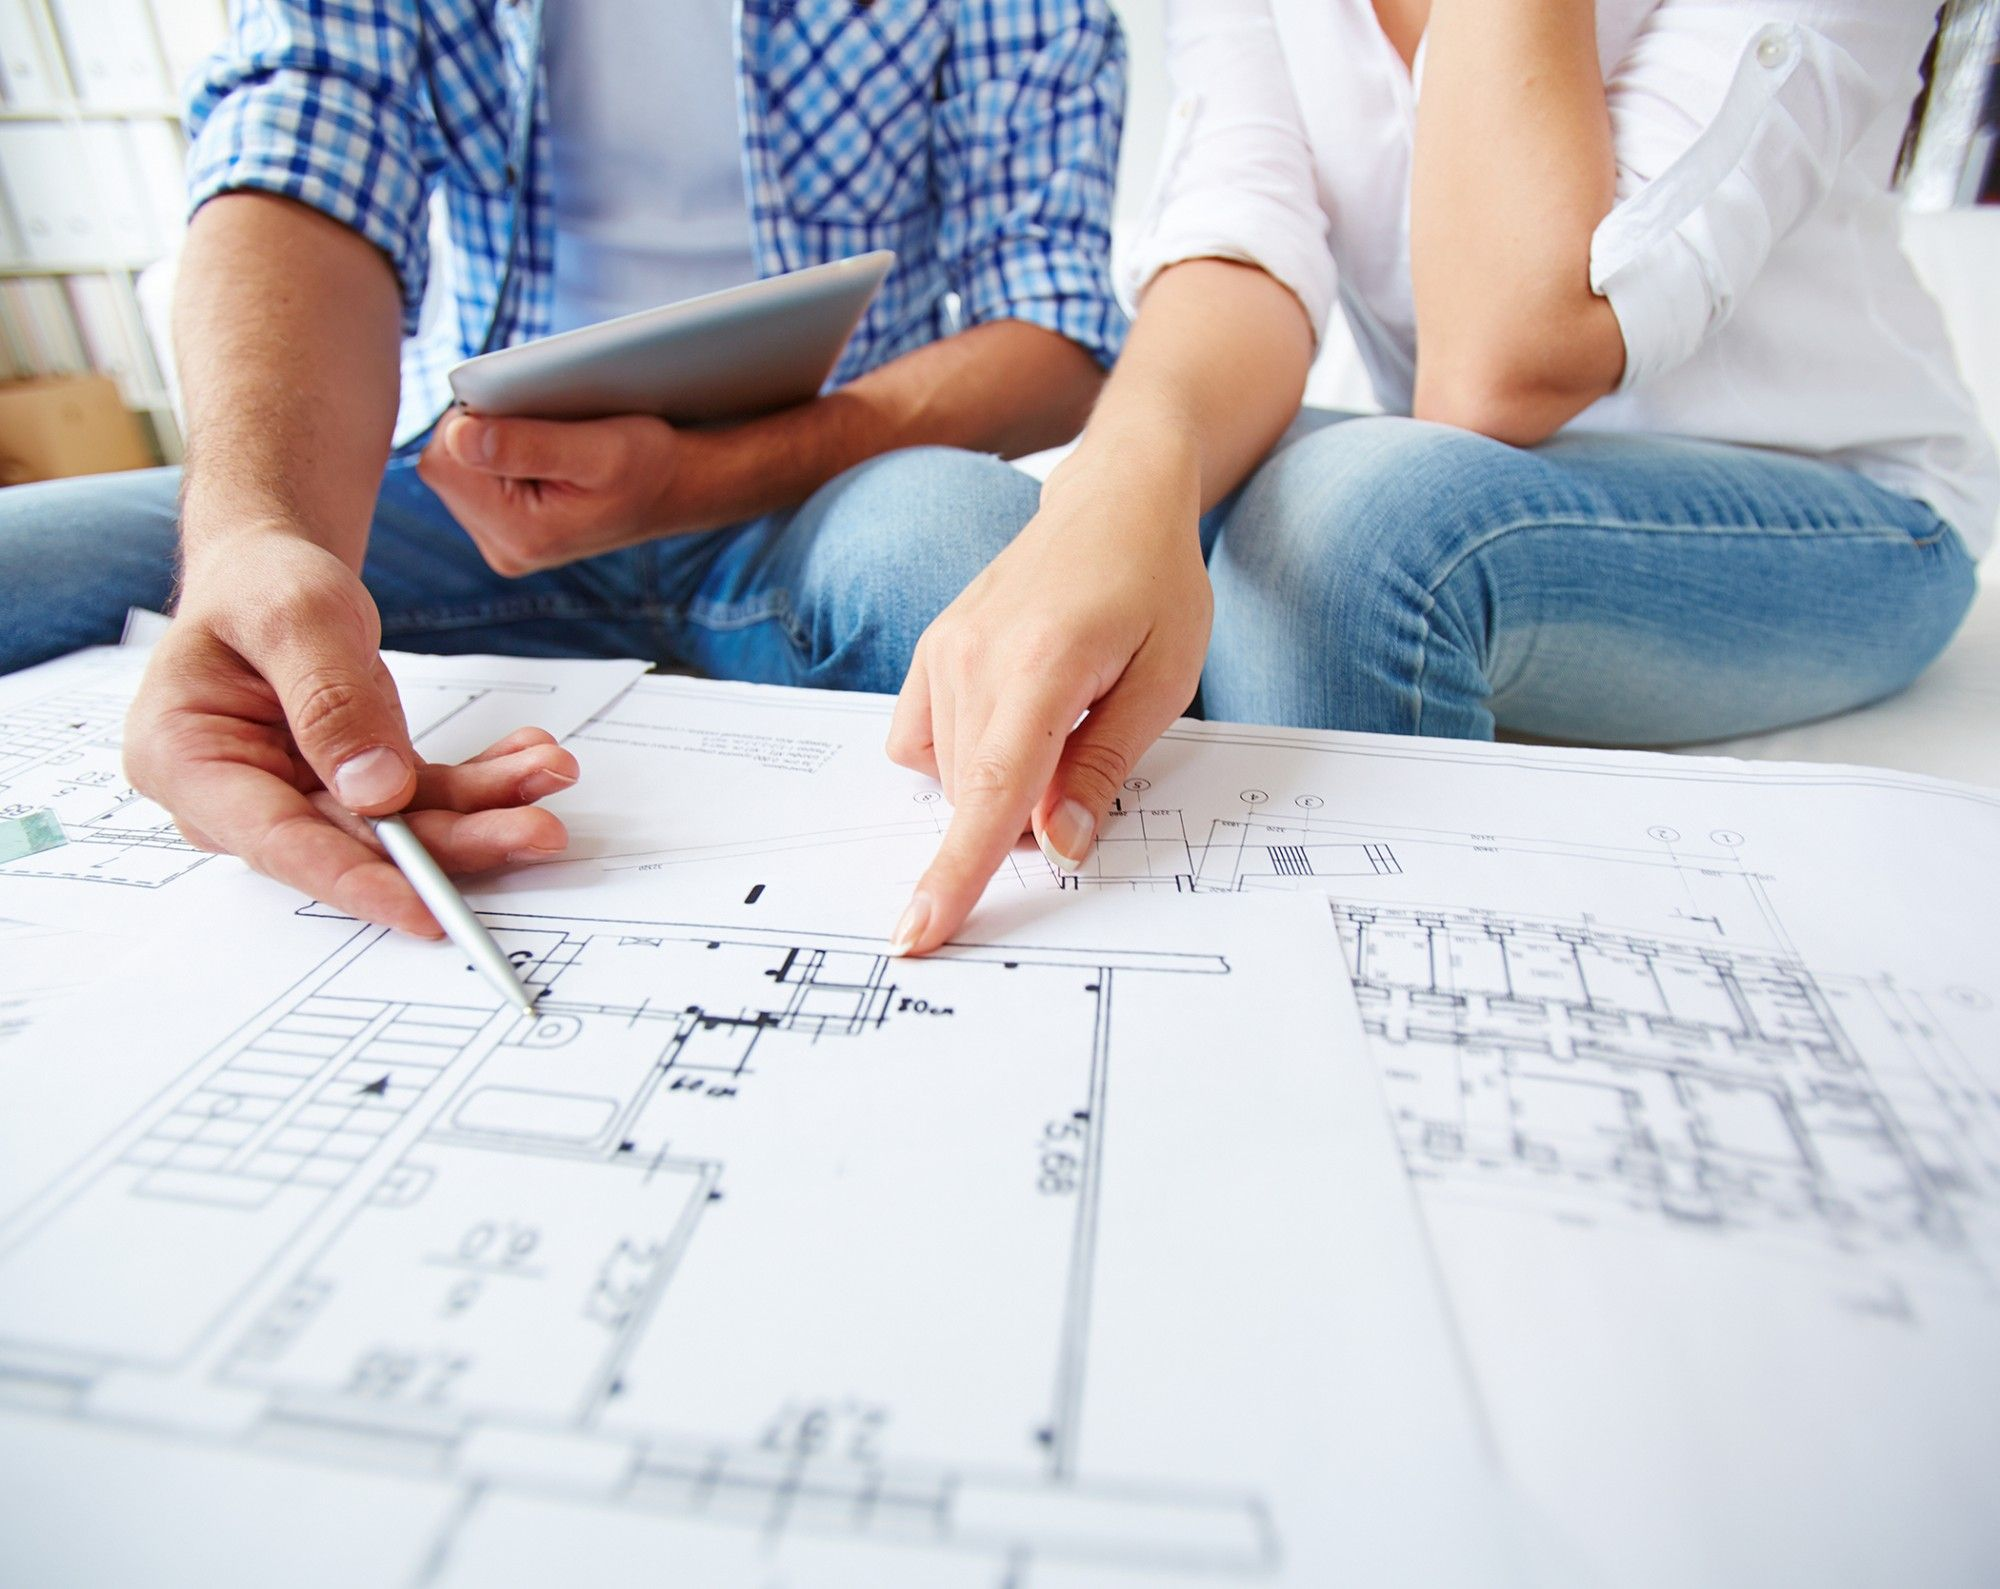 Couple pointing at blueprints